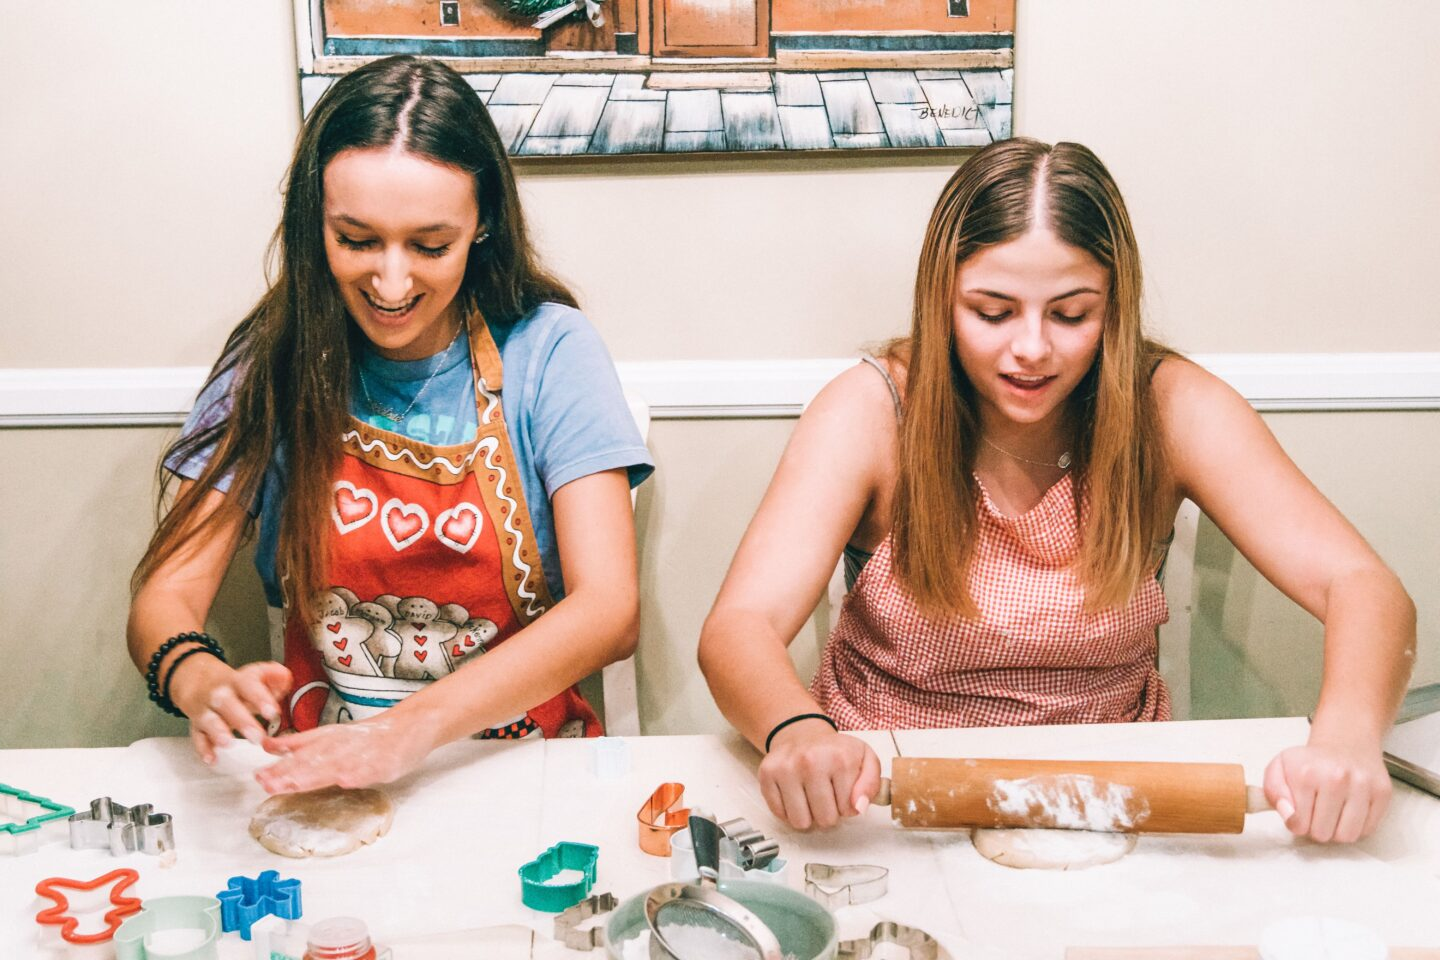 Taking a class, whether painting, cooking, karate, ANYTHING, is a fun way to make new friends